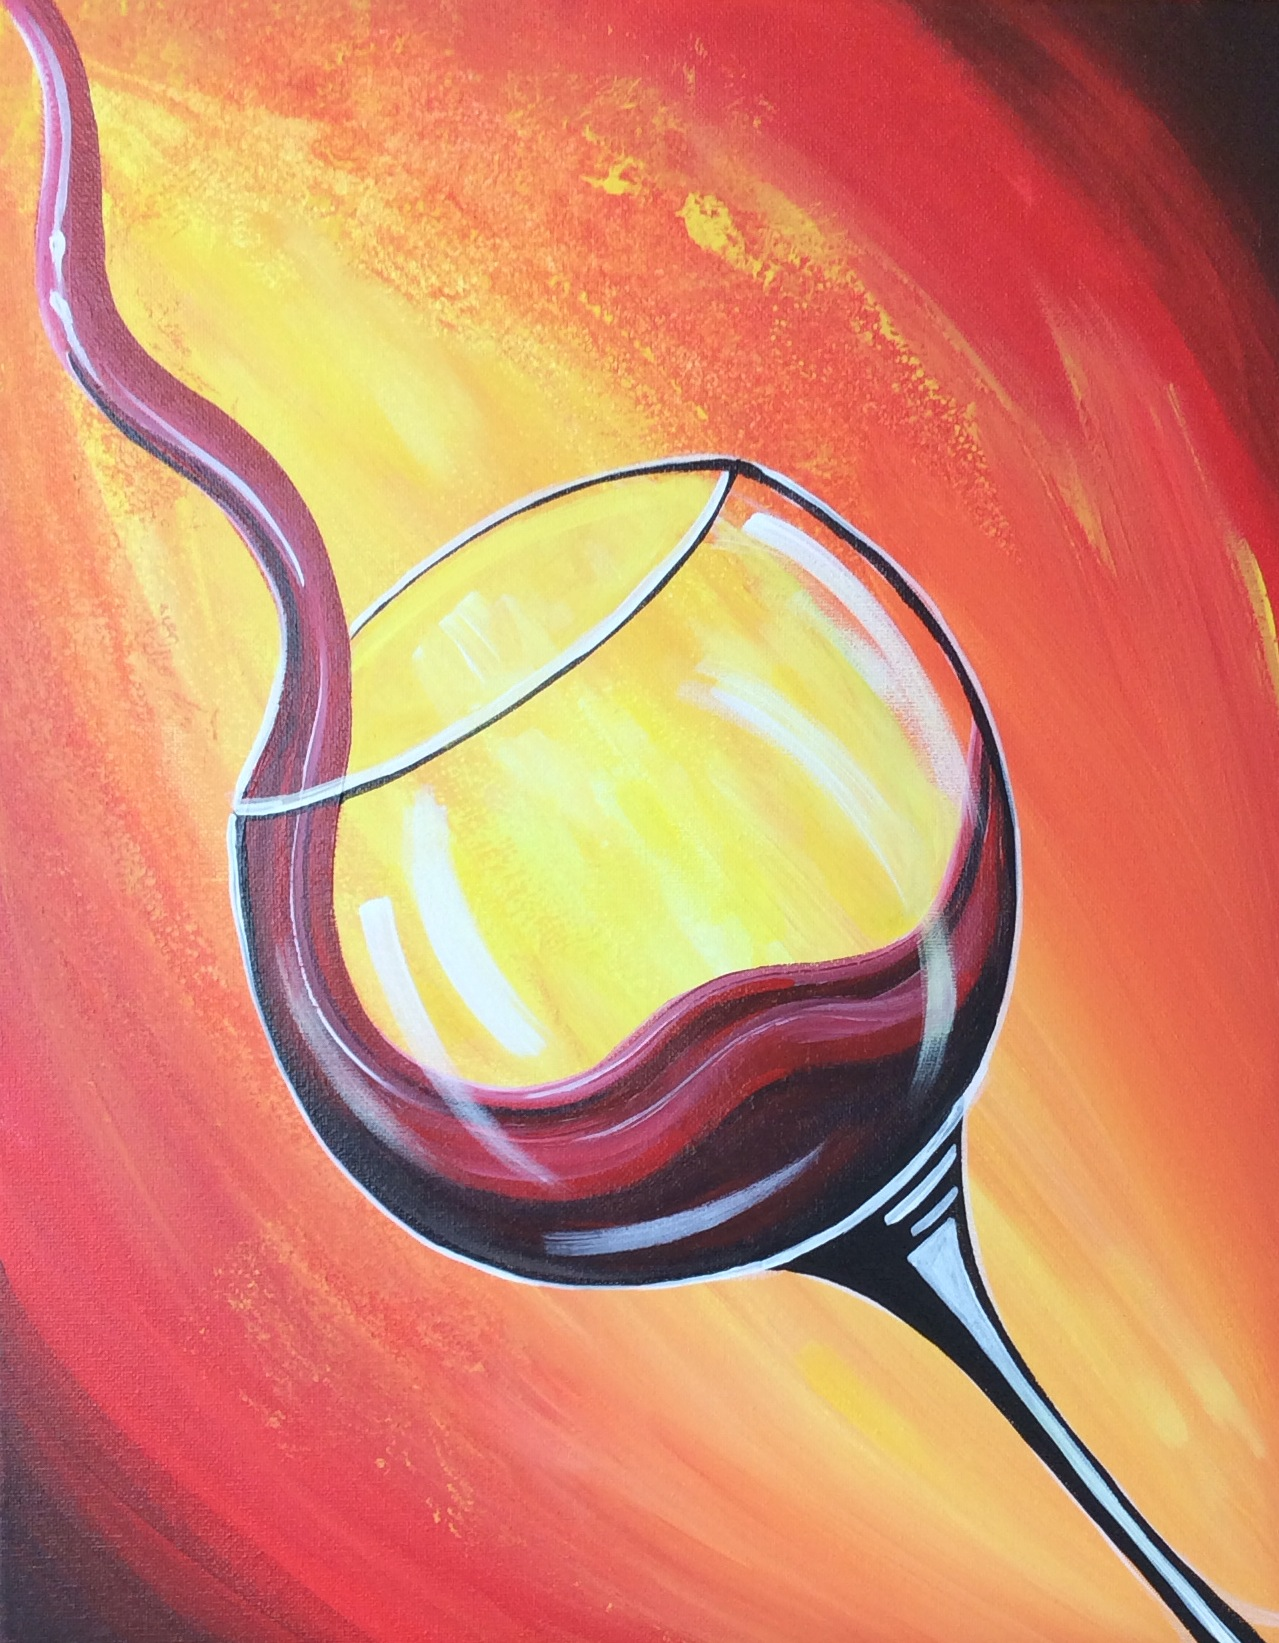 Red Wine Glass - 2 Hours